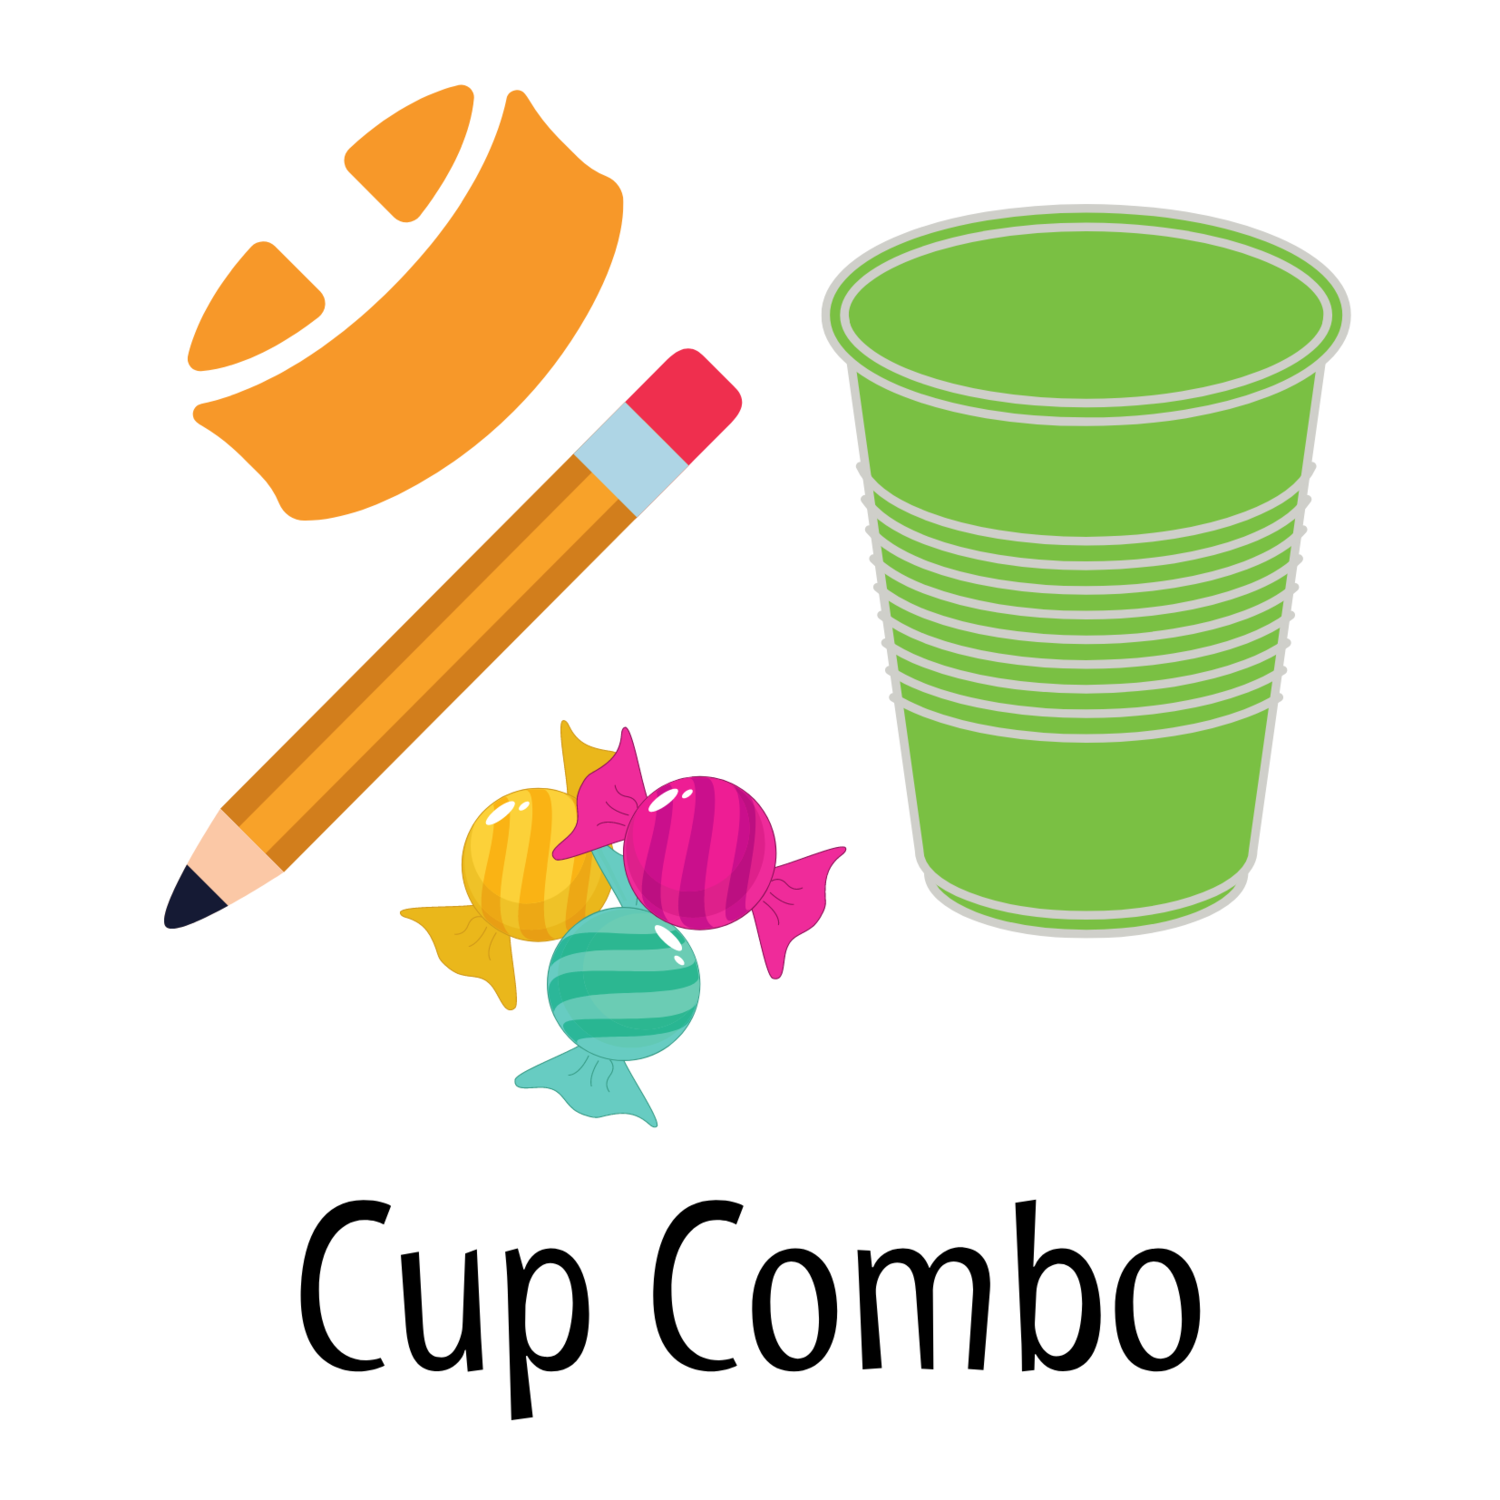 Cup Combo